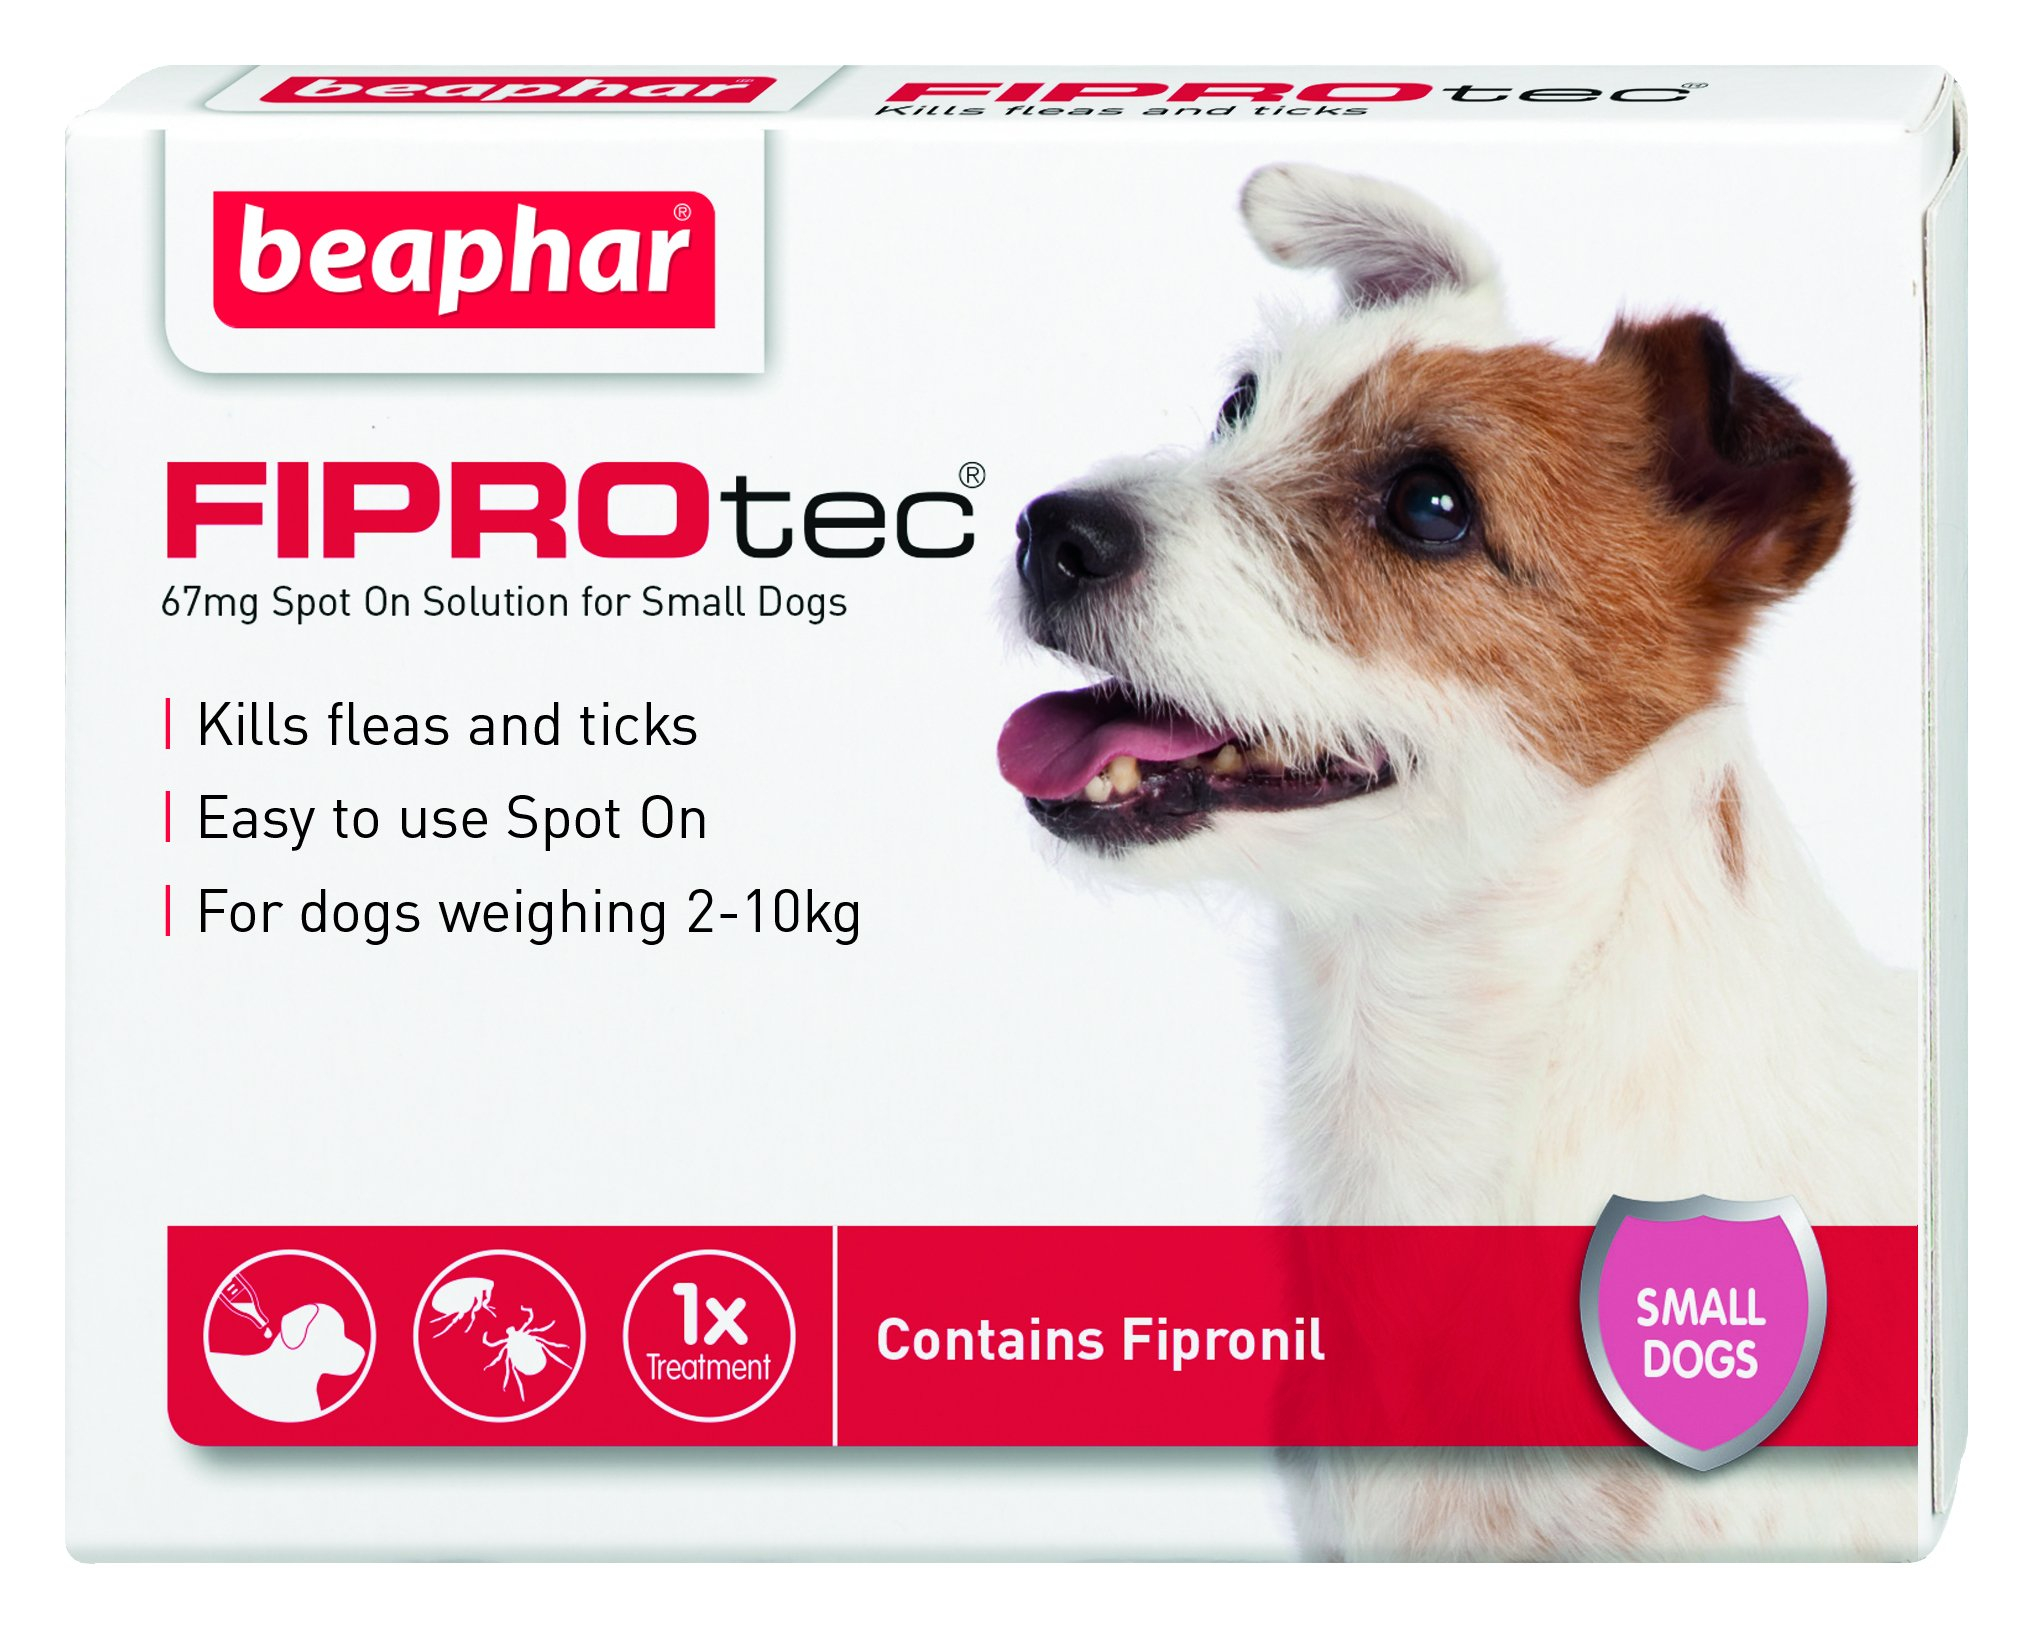 Beaphar FIPROtec Pipette for Extra Large Dog, Pack of 1 1